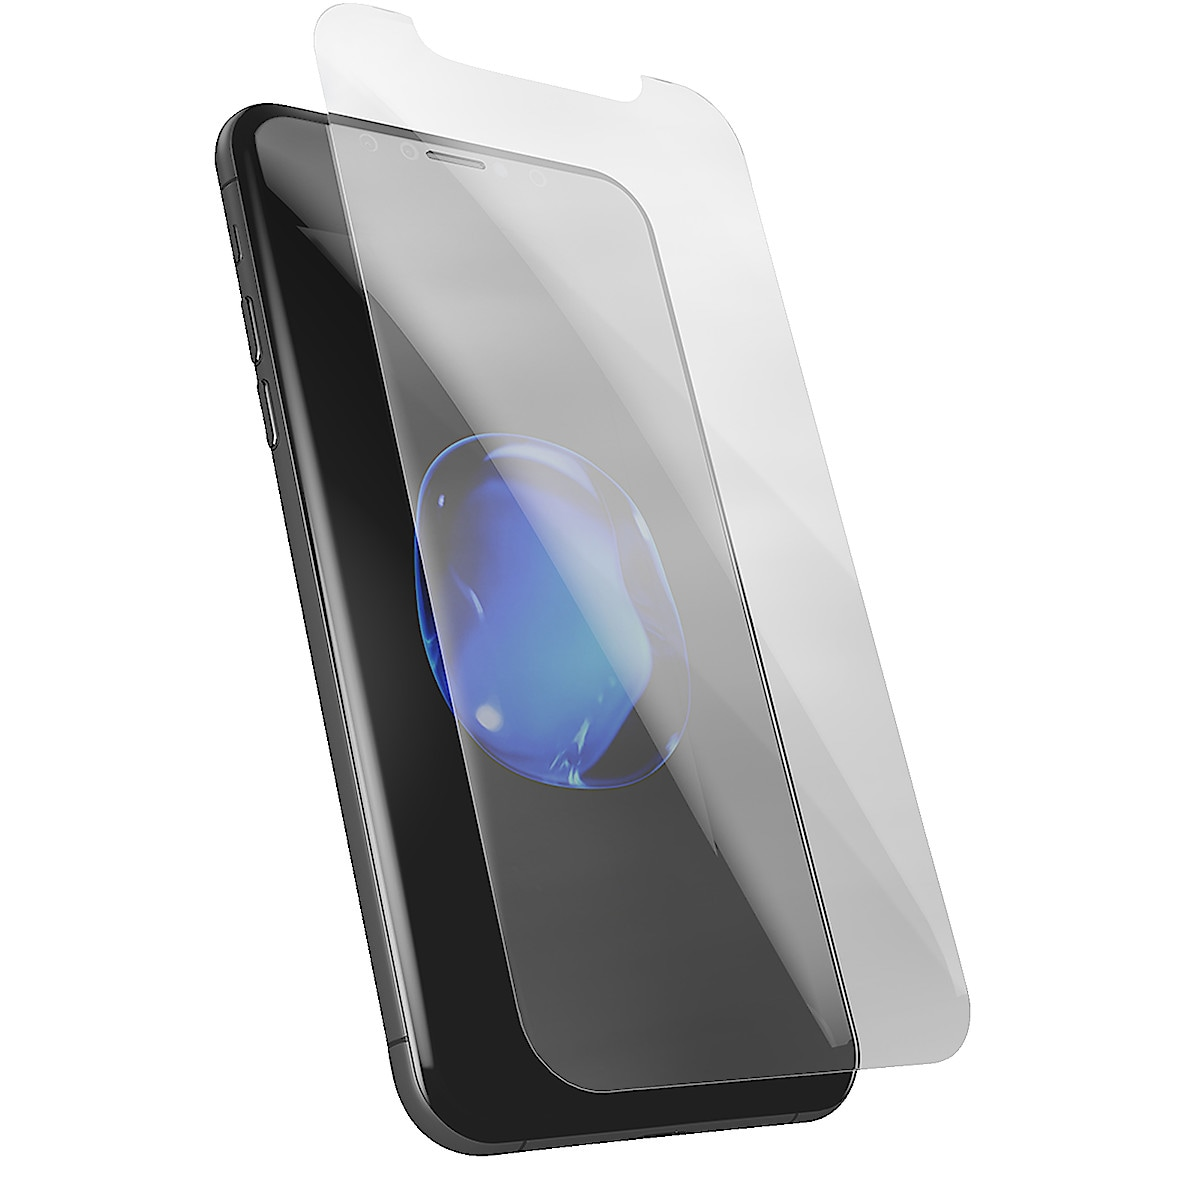 Holdit Tempered Glass, Screen Protector for iPhone X/XS